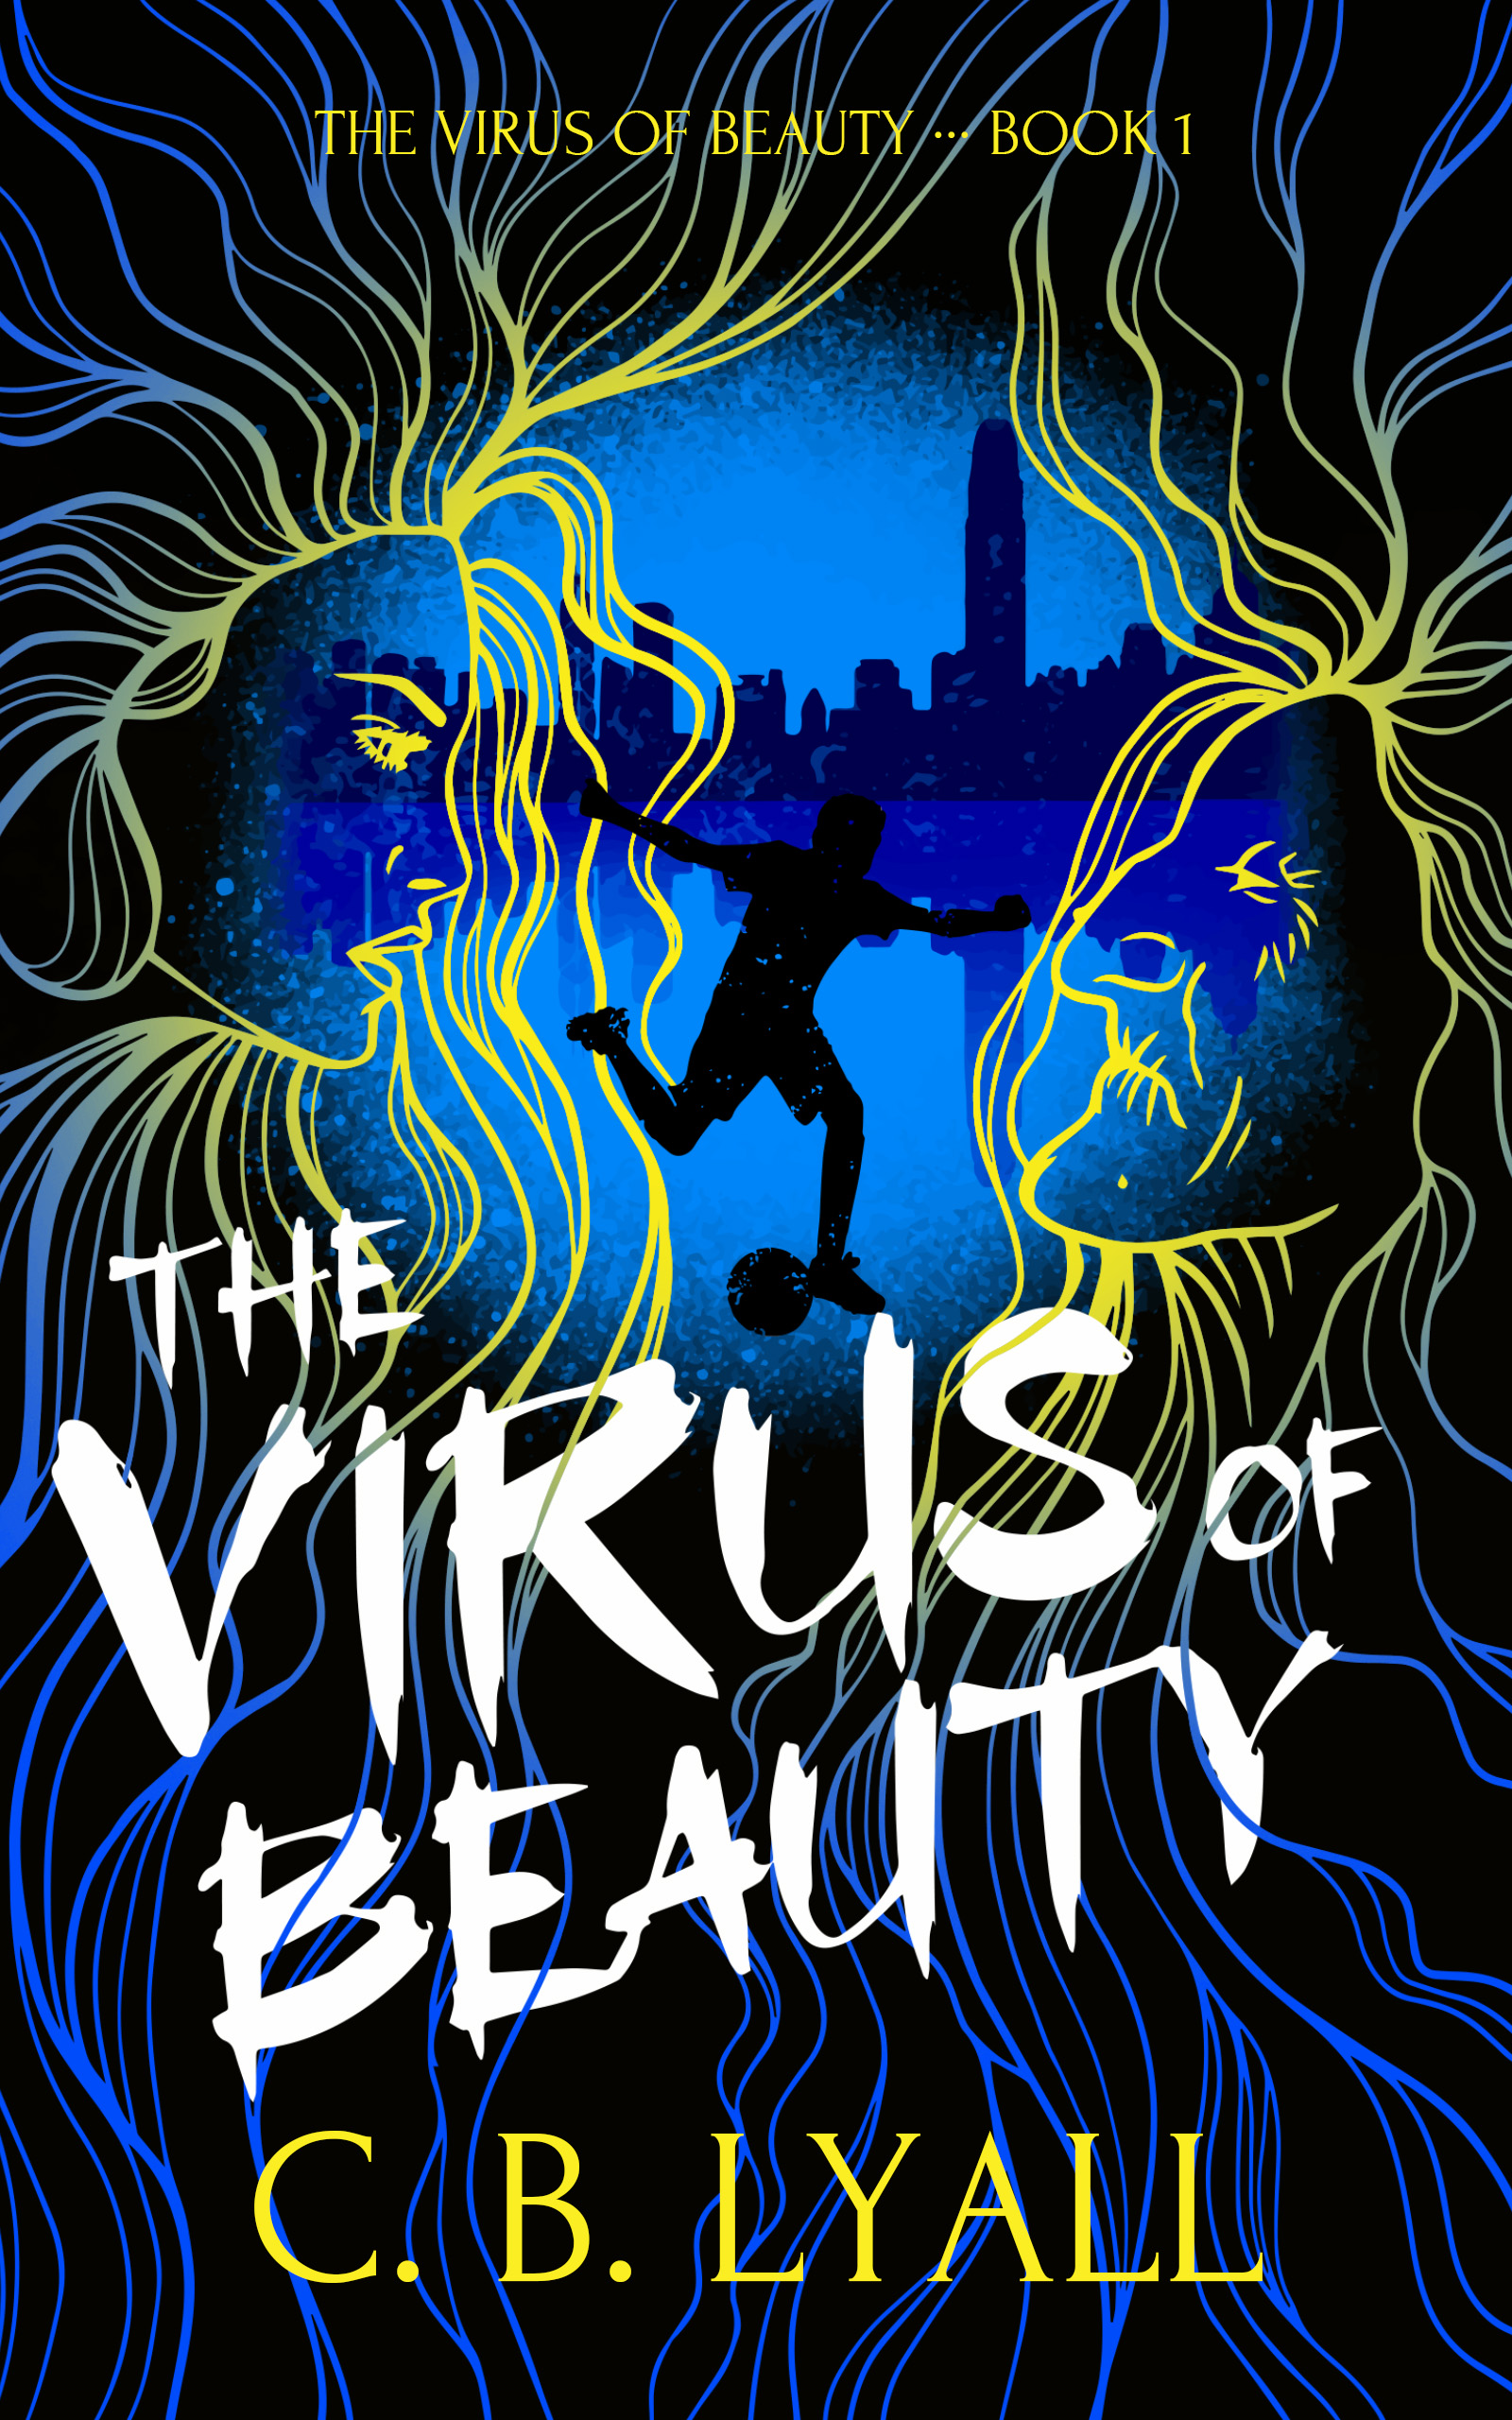 THE VIRUS OF BEAUTY